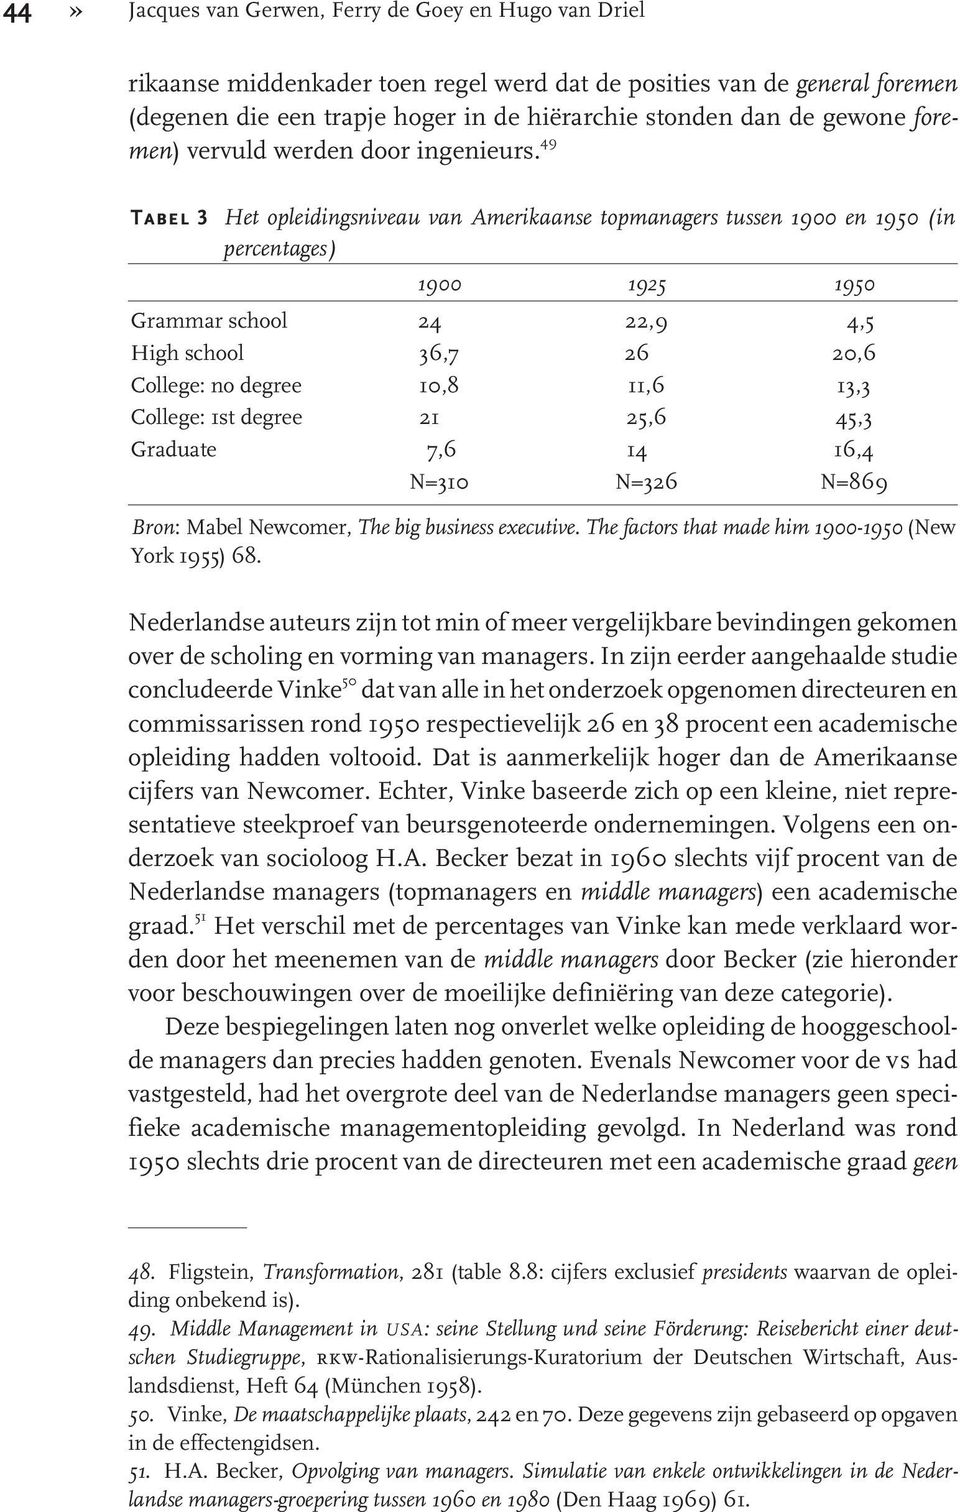 49 Tabel 3 Het opleidingsniveau van Amerikaanse topmanagers tussen 1900 en 1950 (in percentages) 1900 1925 1950 Grammar school 24 22,9 4,5 High school 36,7 26 20,6 College: no degree 10,8 11,6 13,3